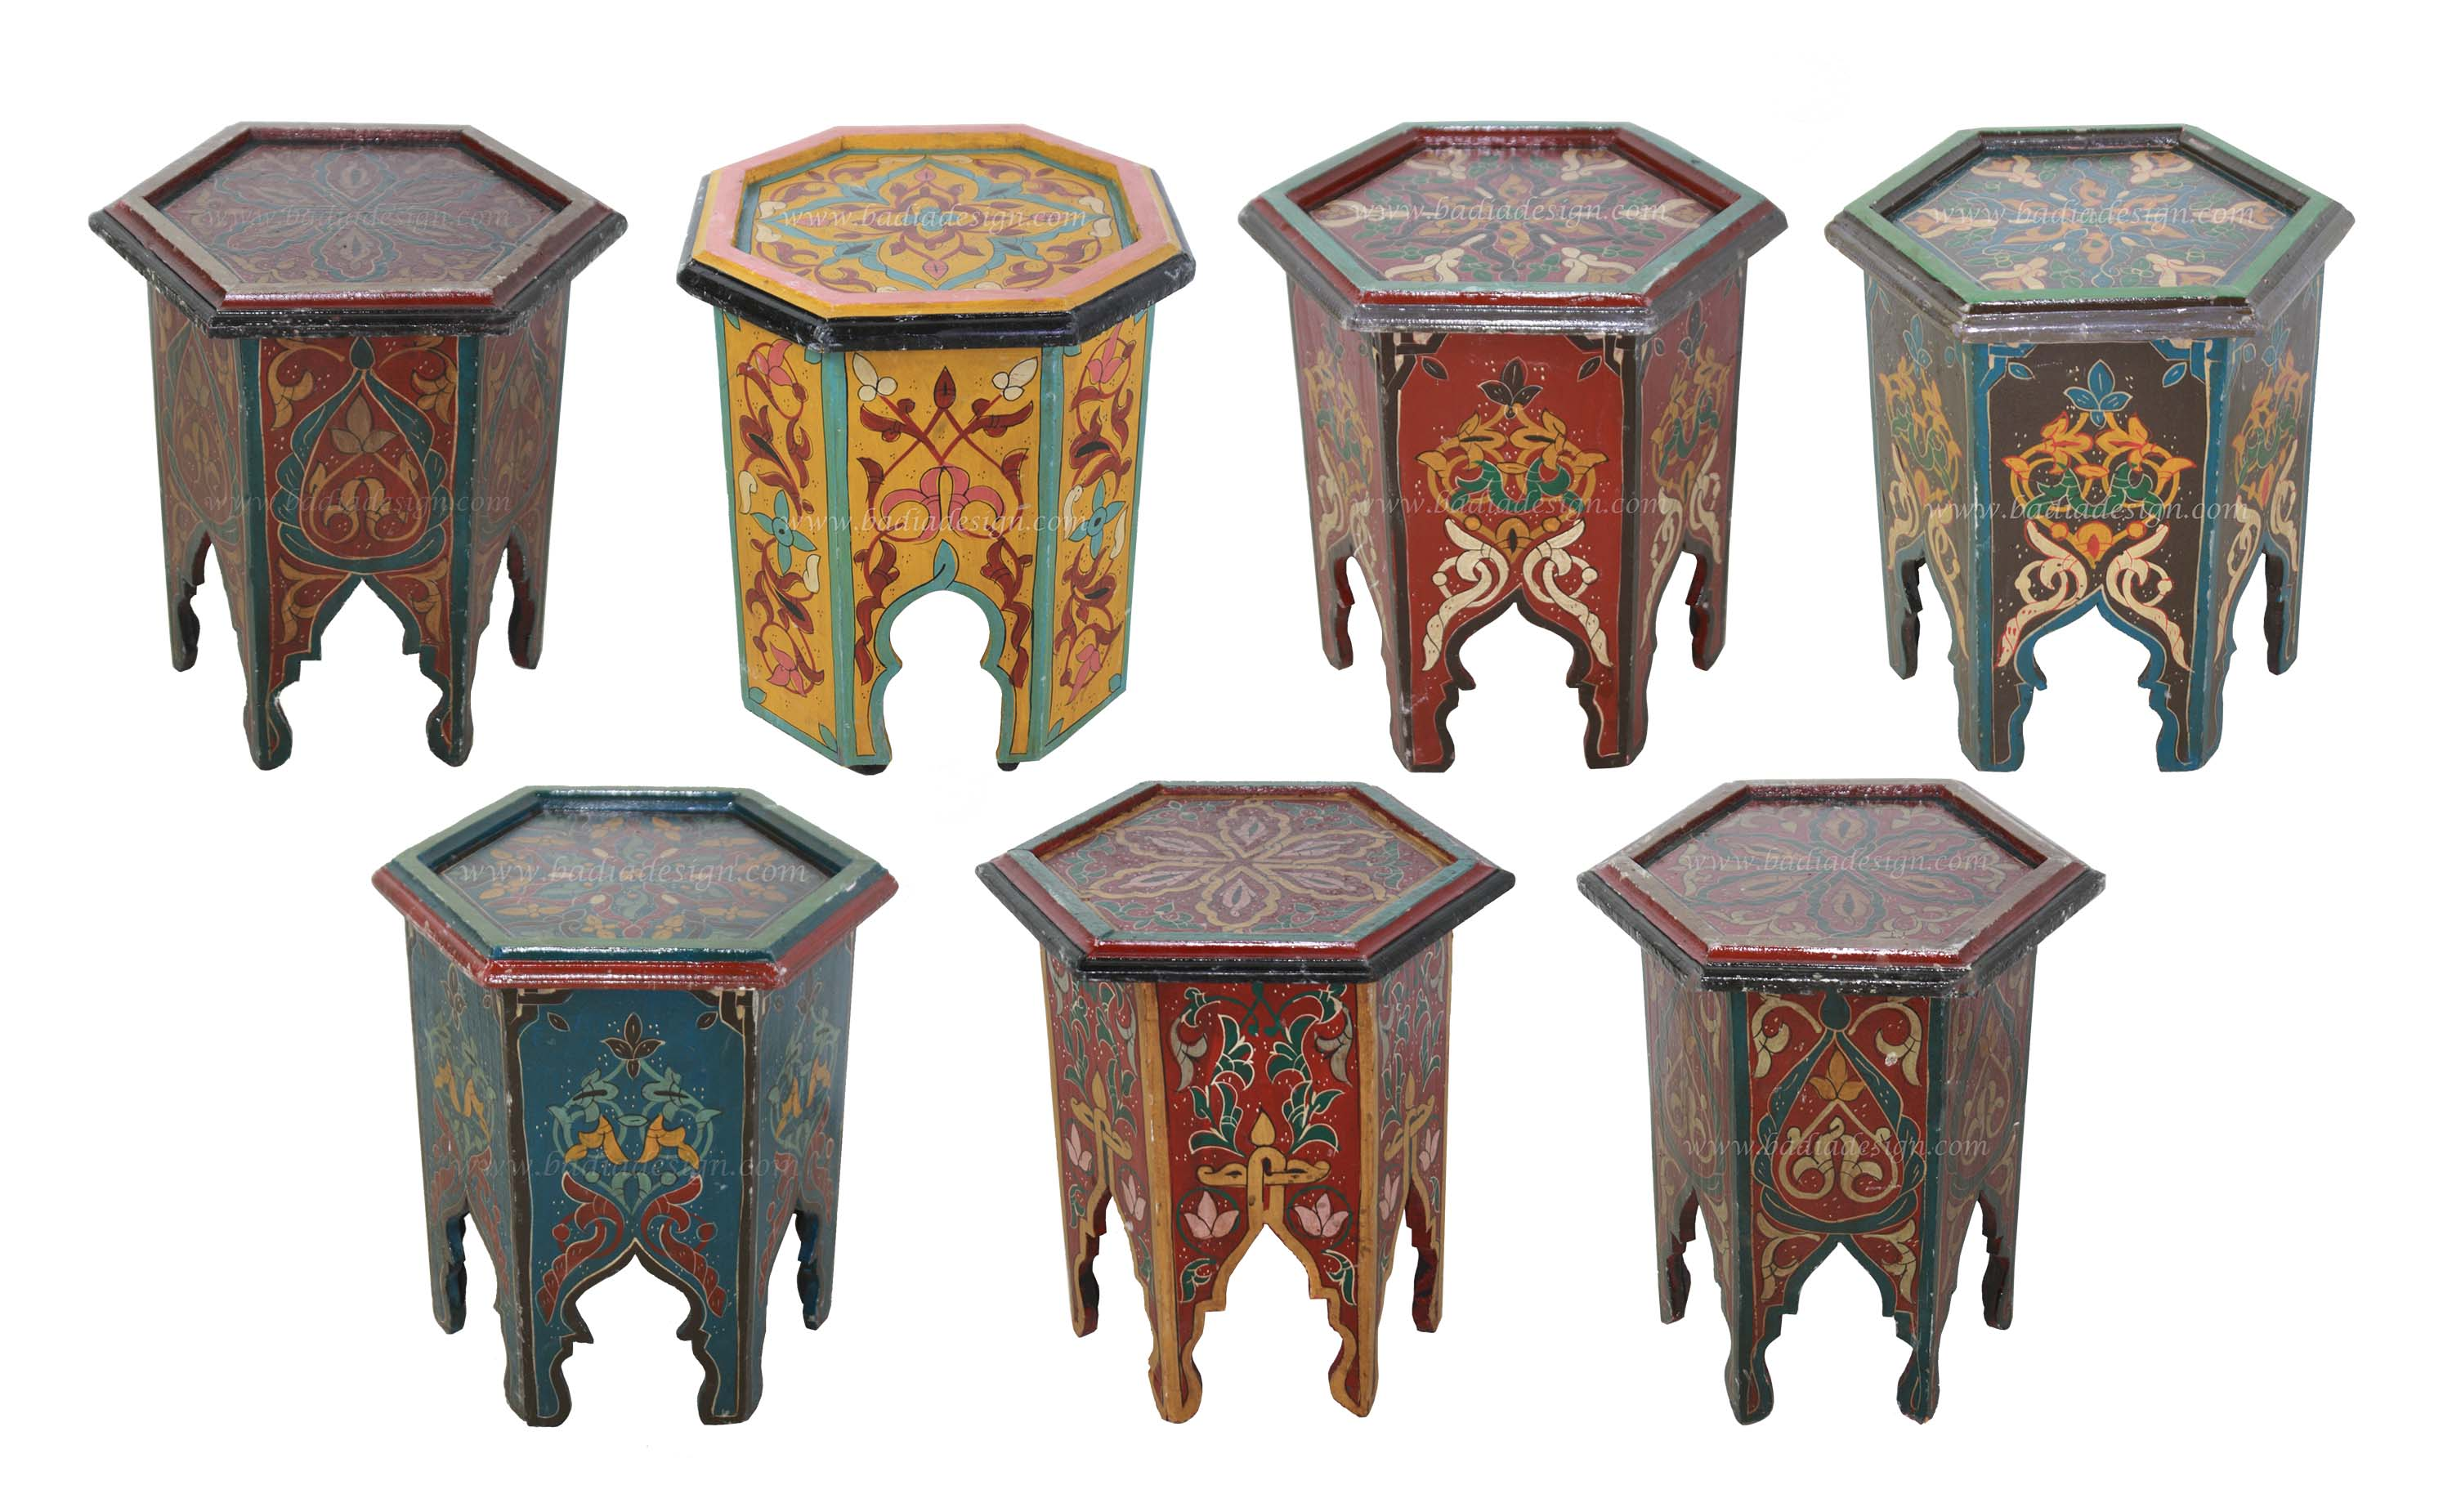 moroccan-hand-painted-table-hp004.jpg